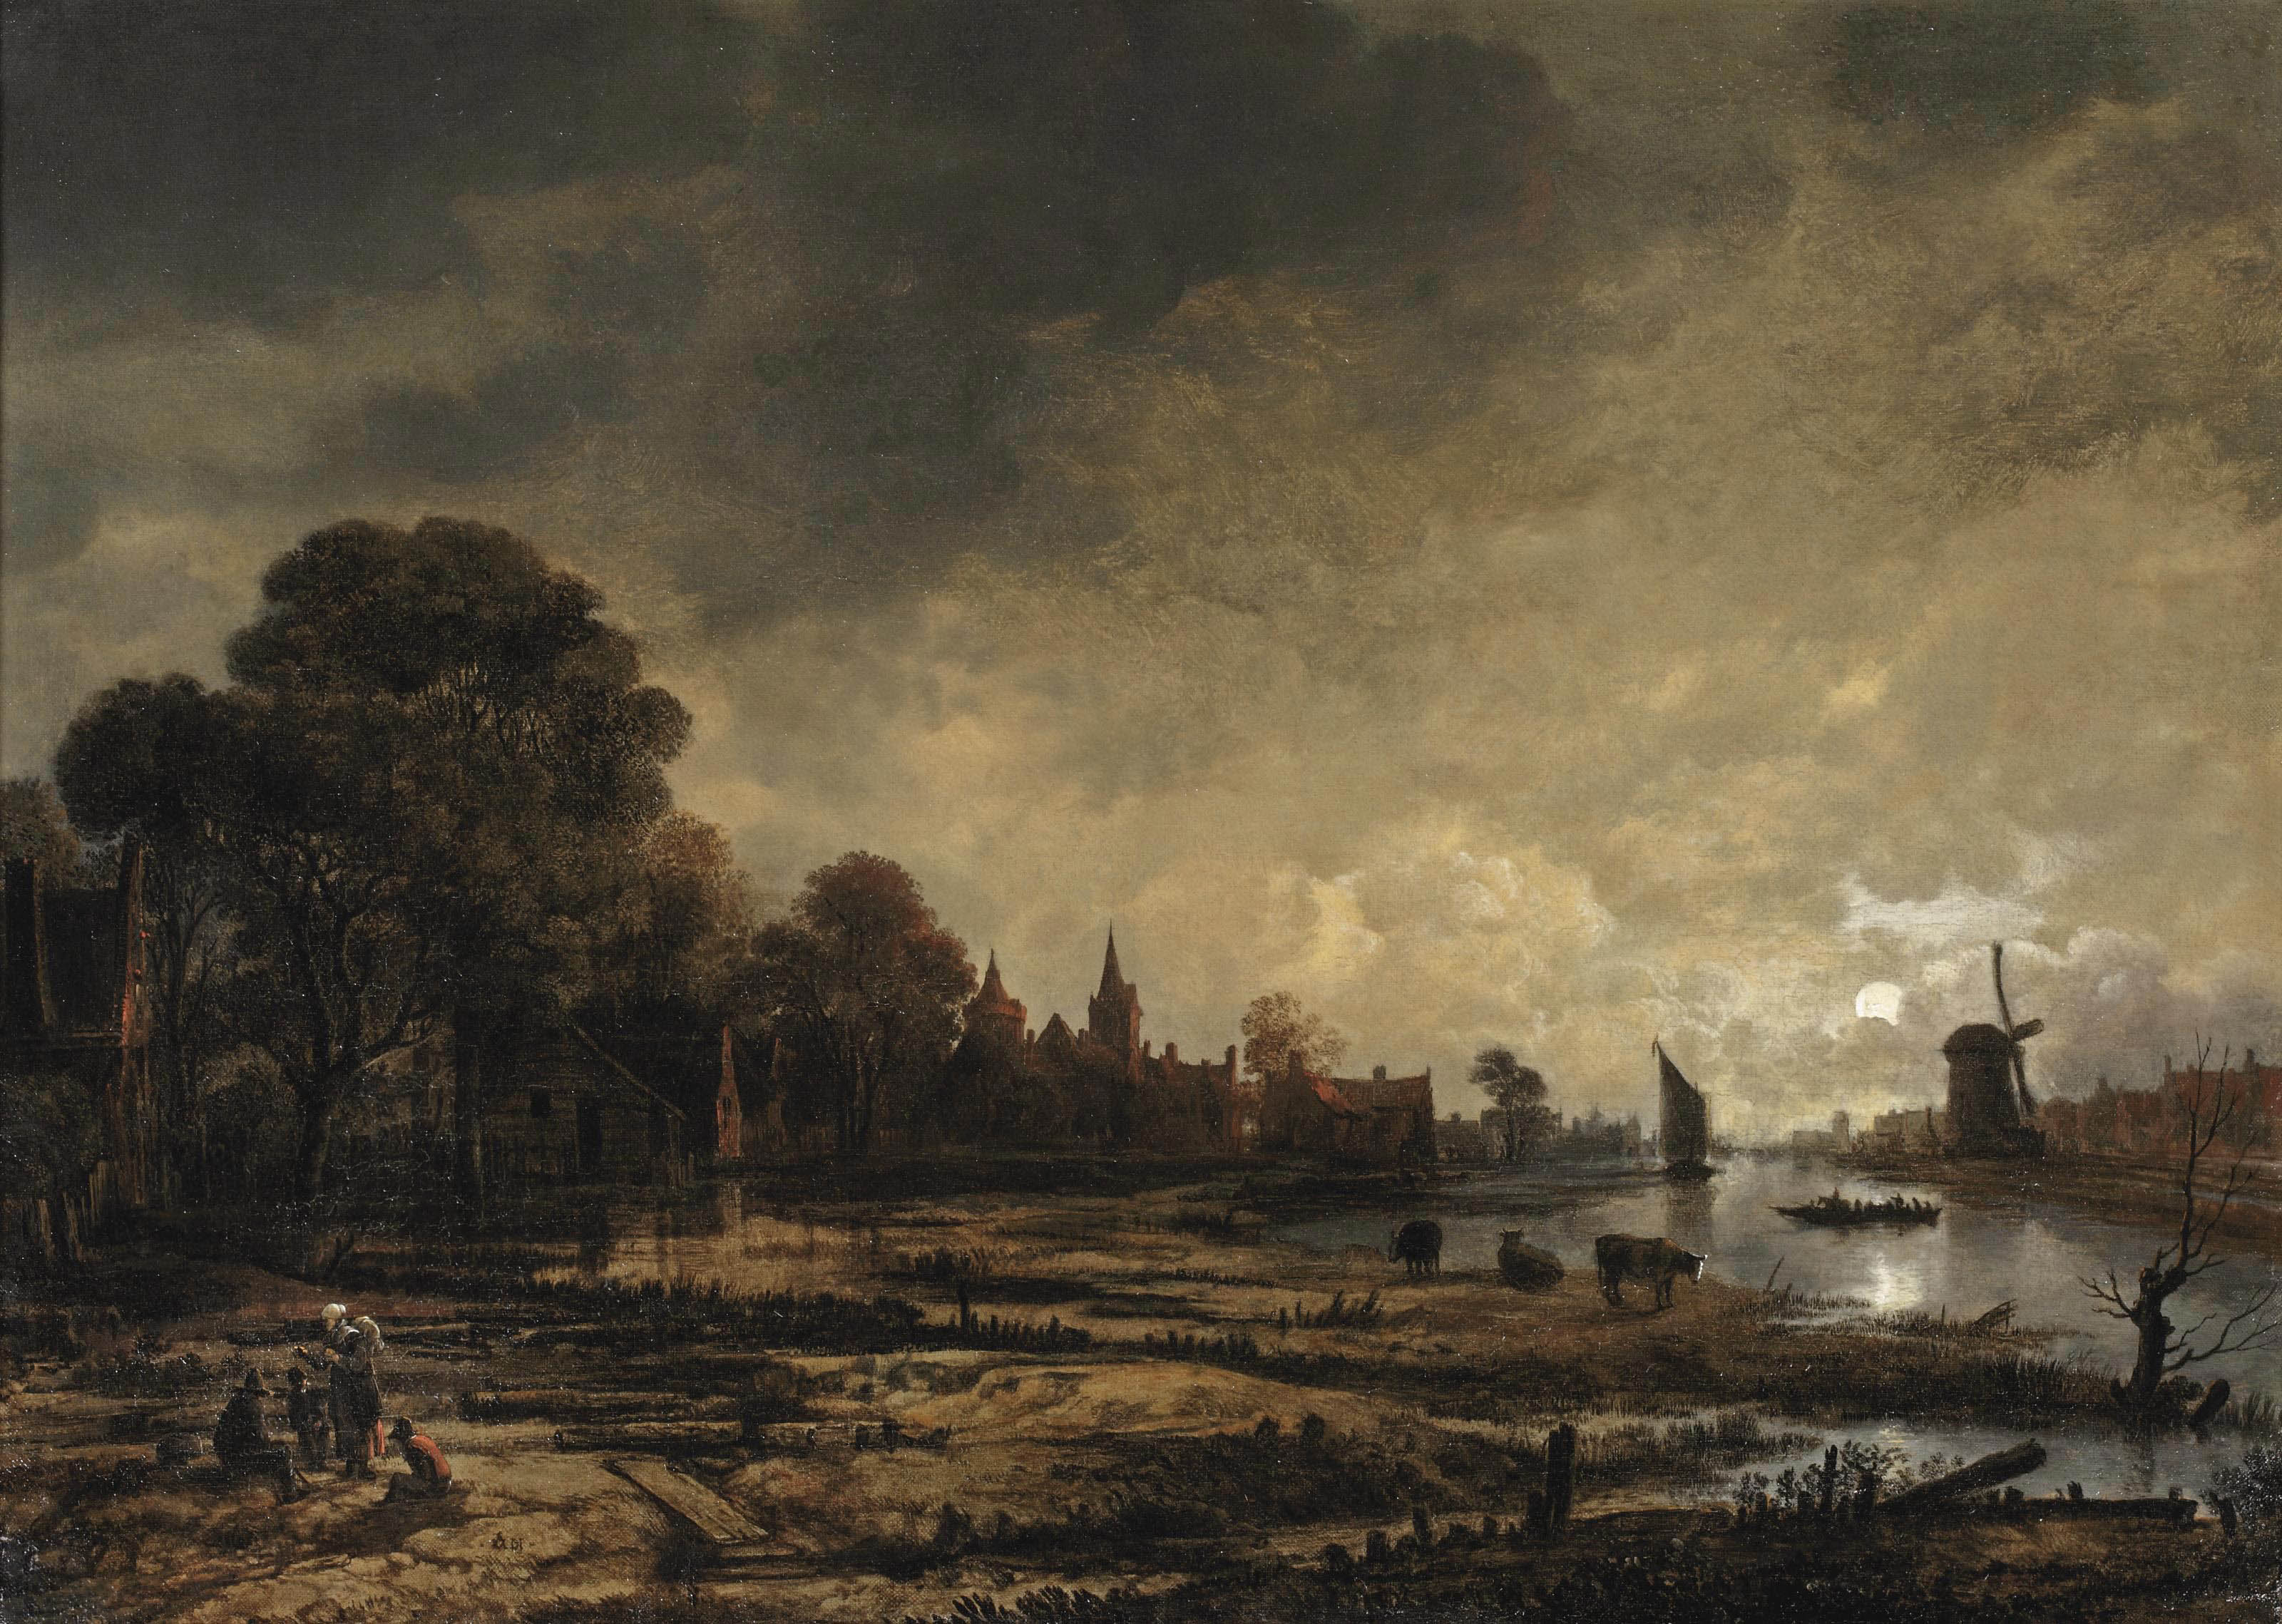 A moonlit river landscape with figures conversing on the outskirts of a town